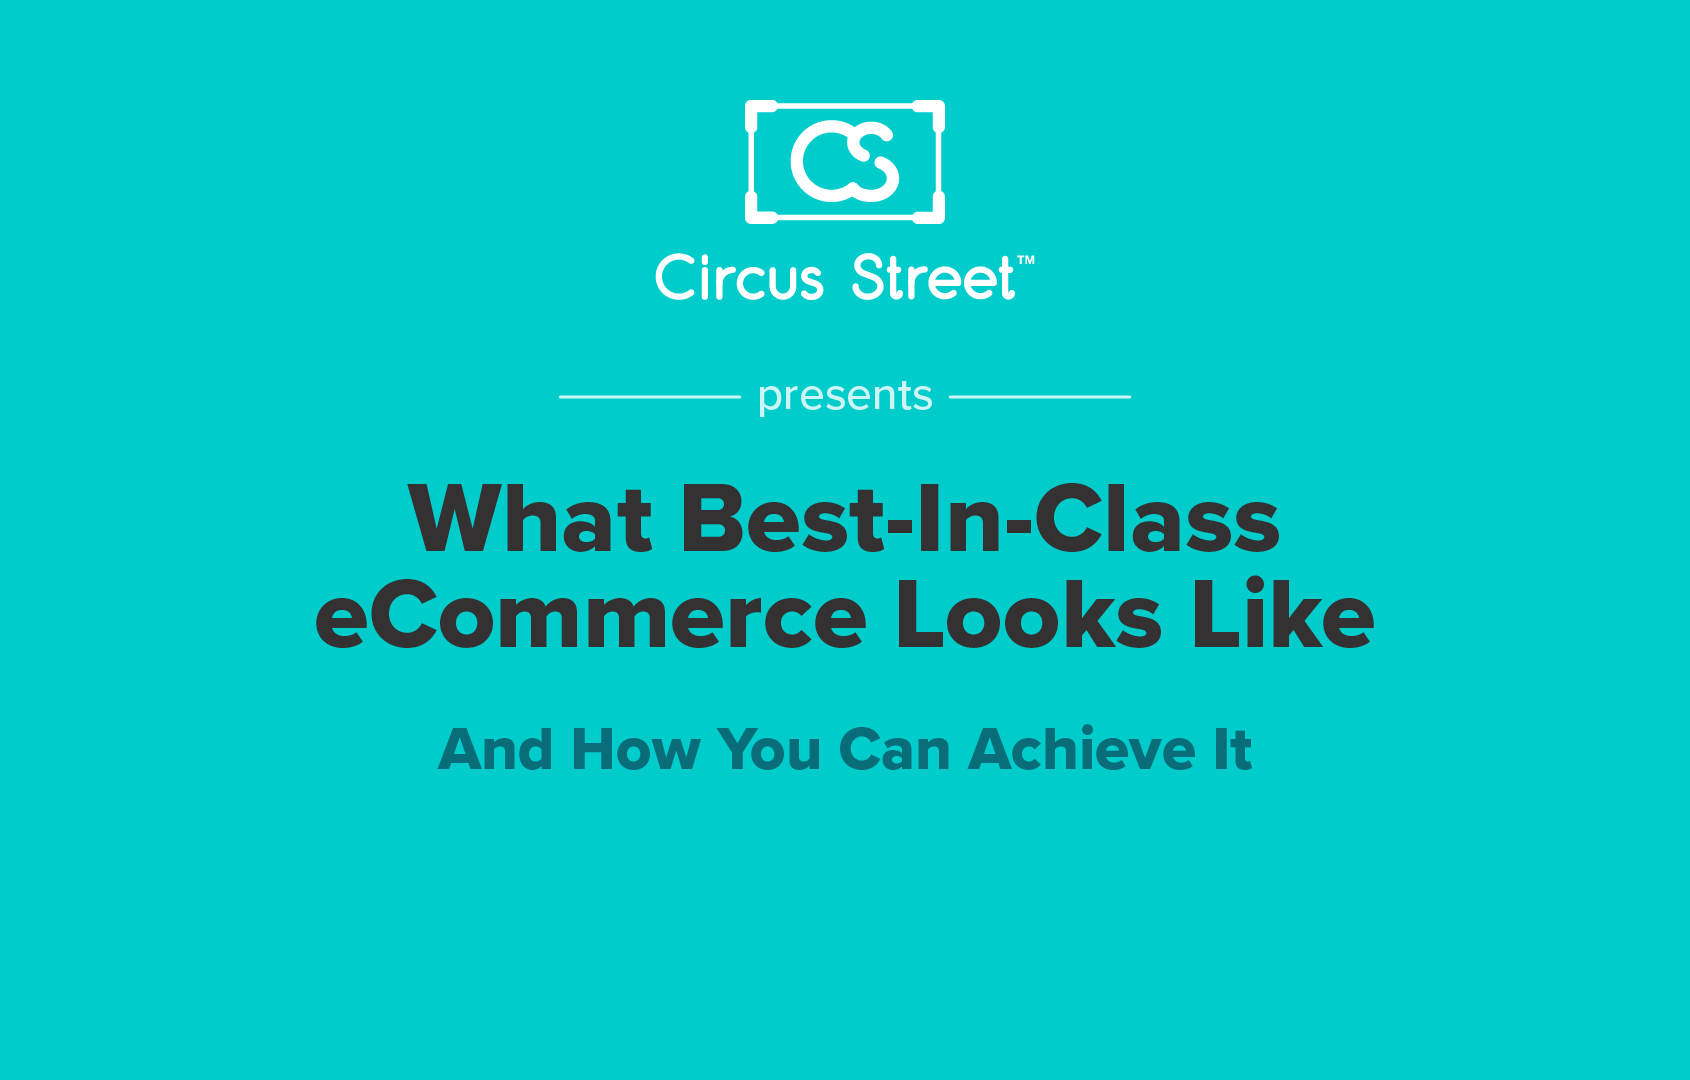 What Best-In-Class eCommerce Looks Like